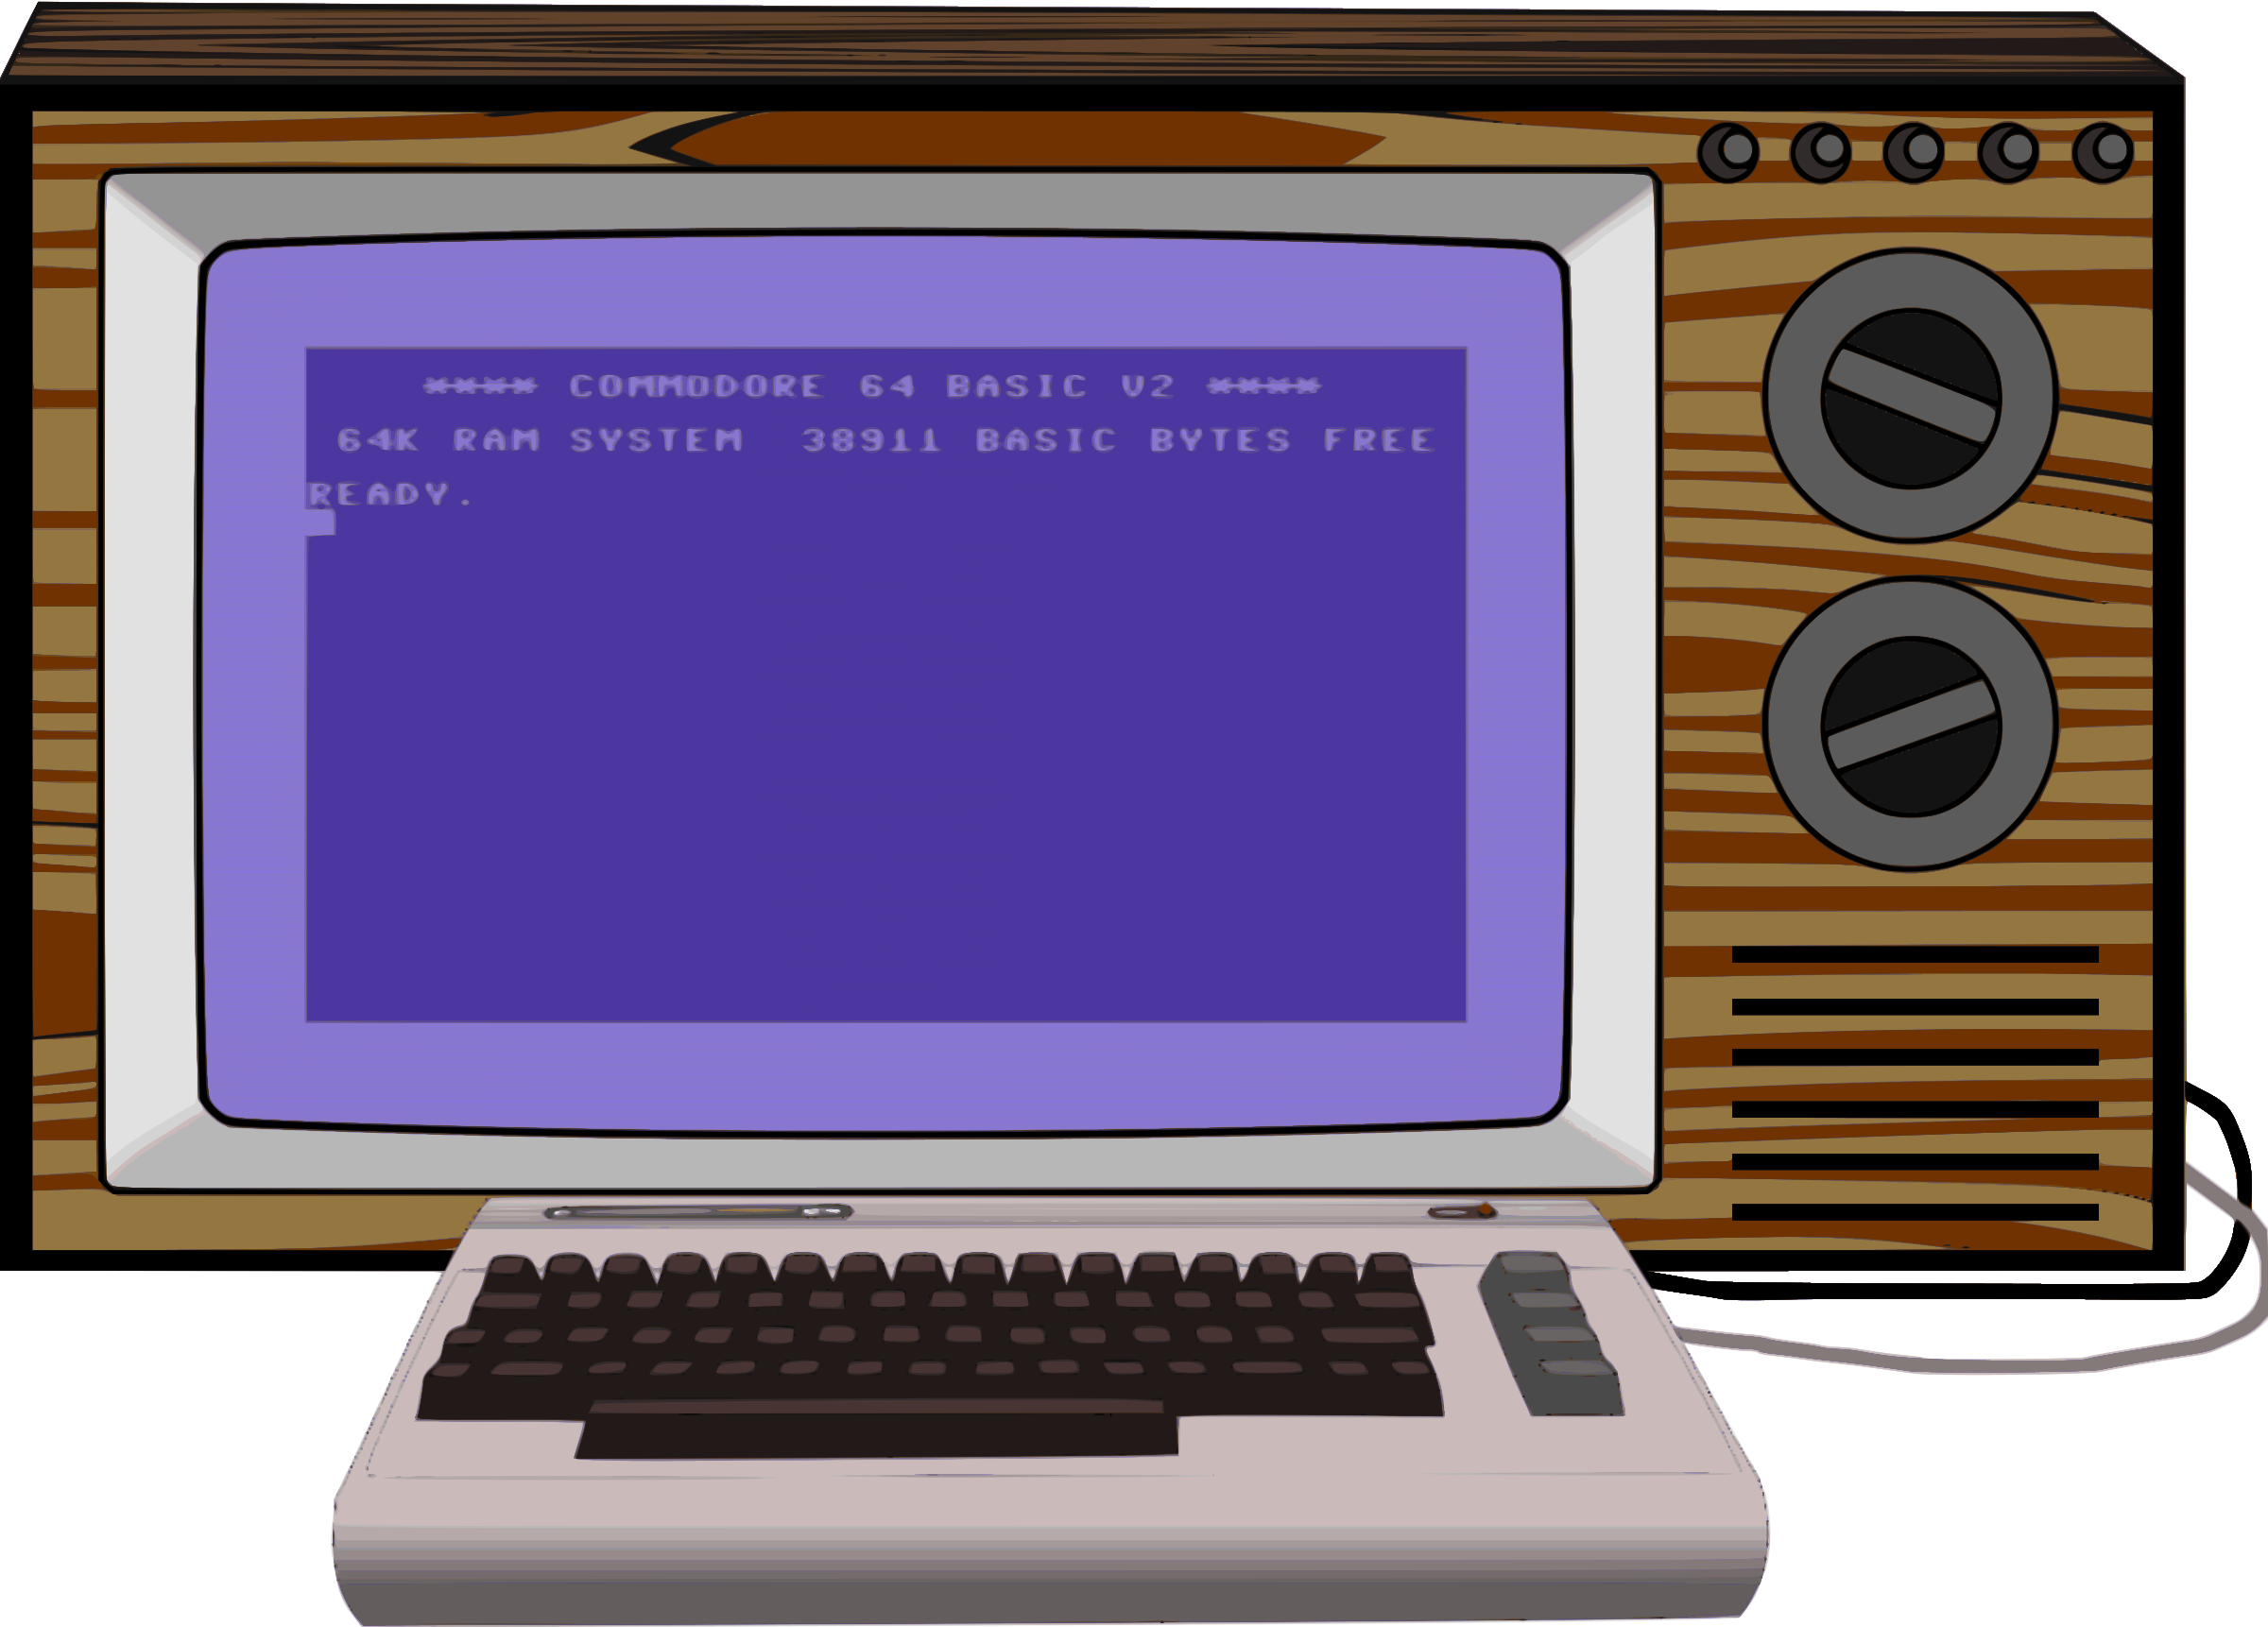 Commodore 64 set-up by Firkin